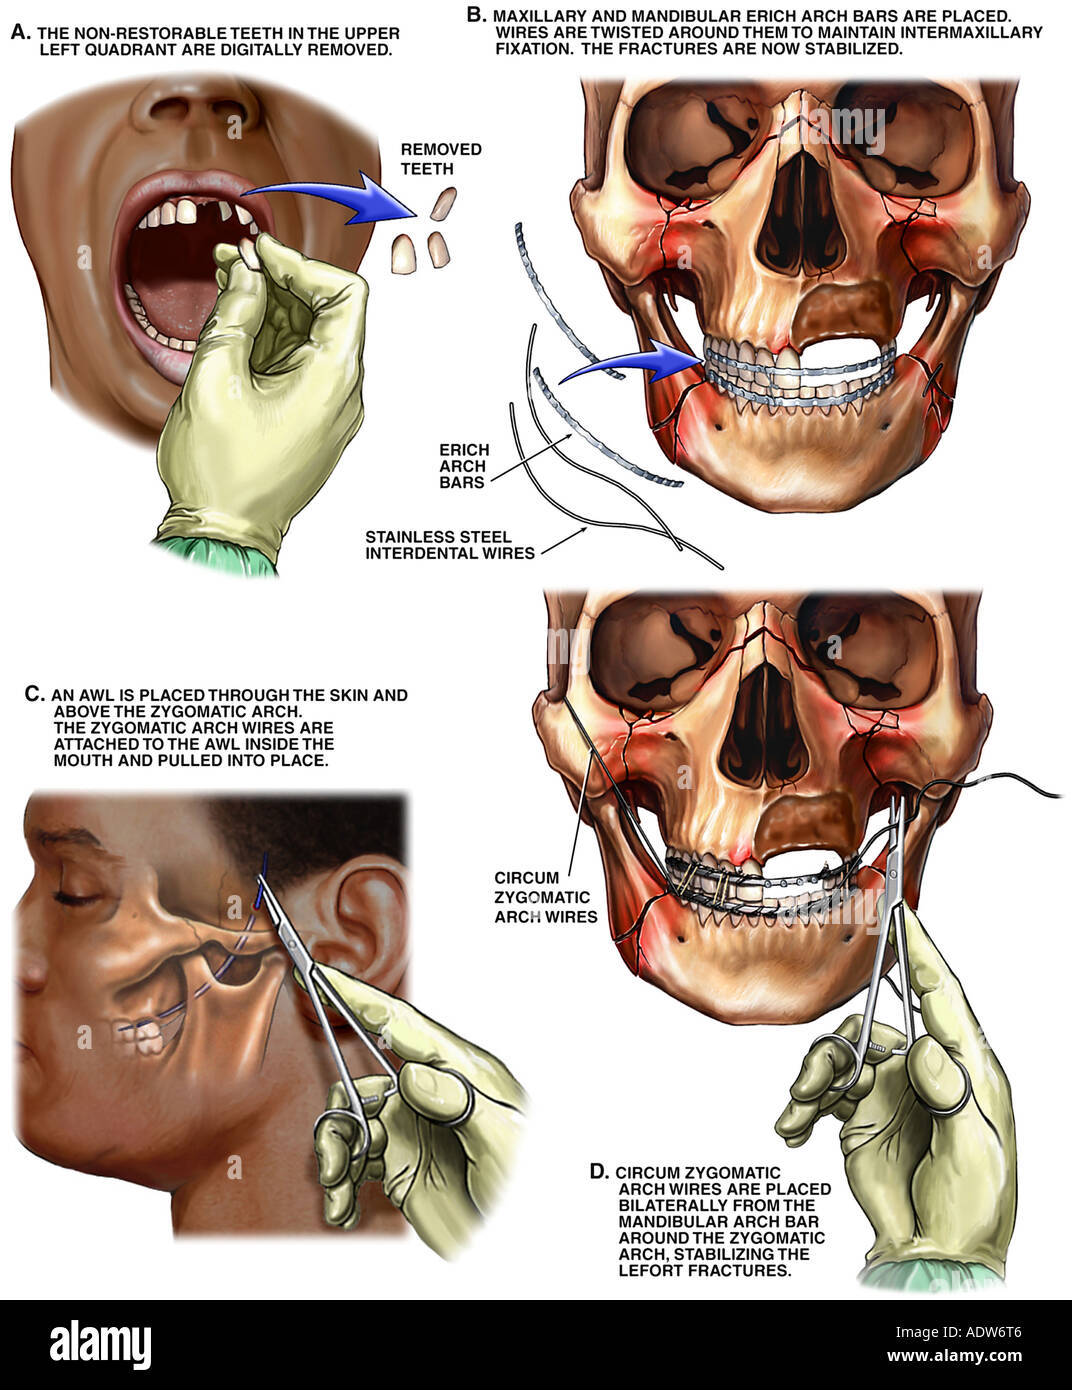 Surgical Fixation of Maxillary and Mandibular Fractures Stock Photo ...